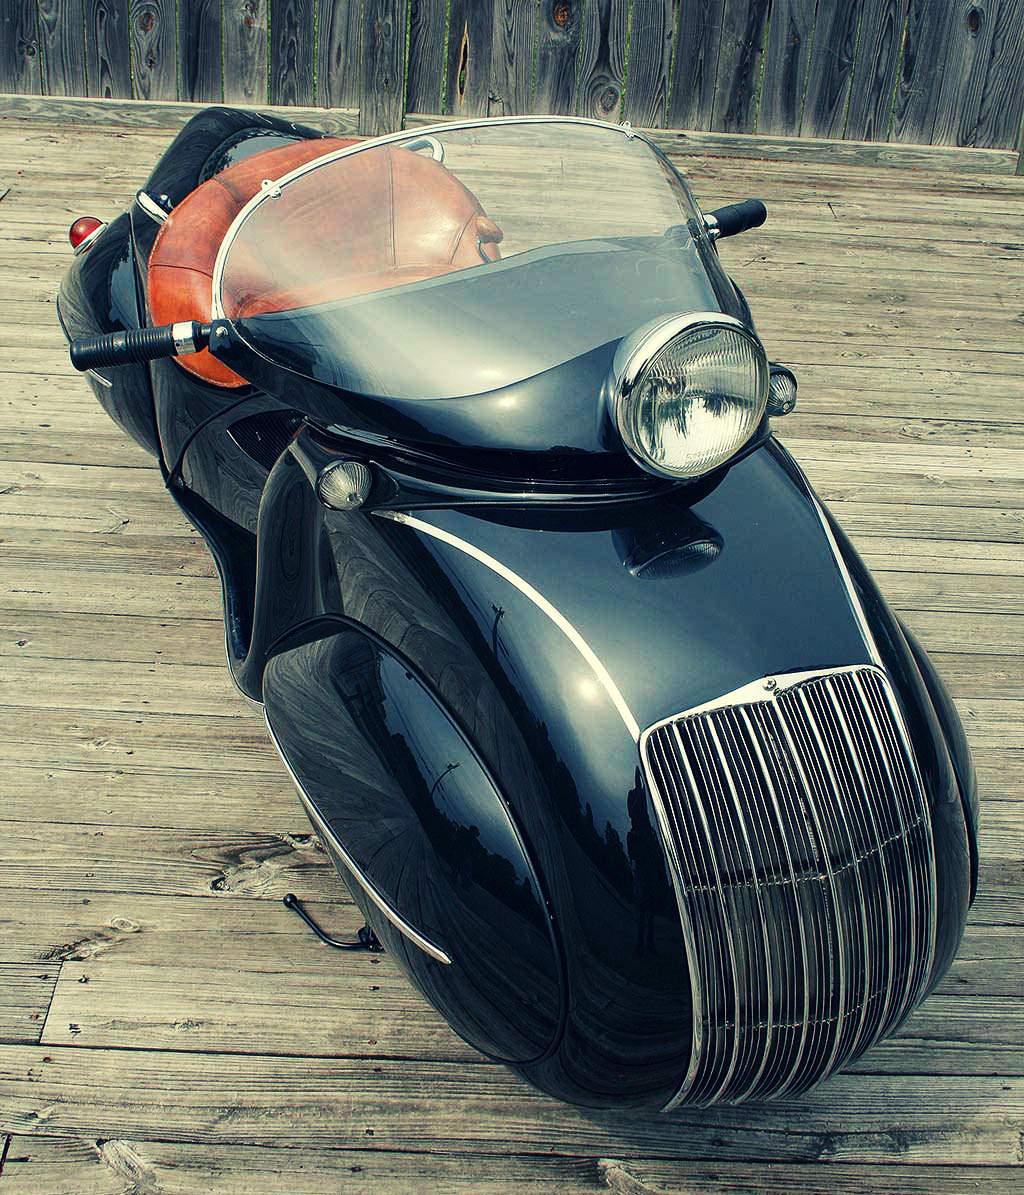 1930 Henderson Custom Motorcycle 2